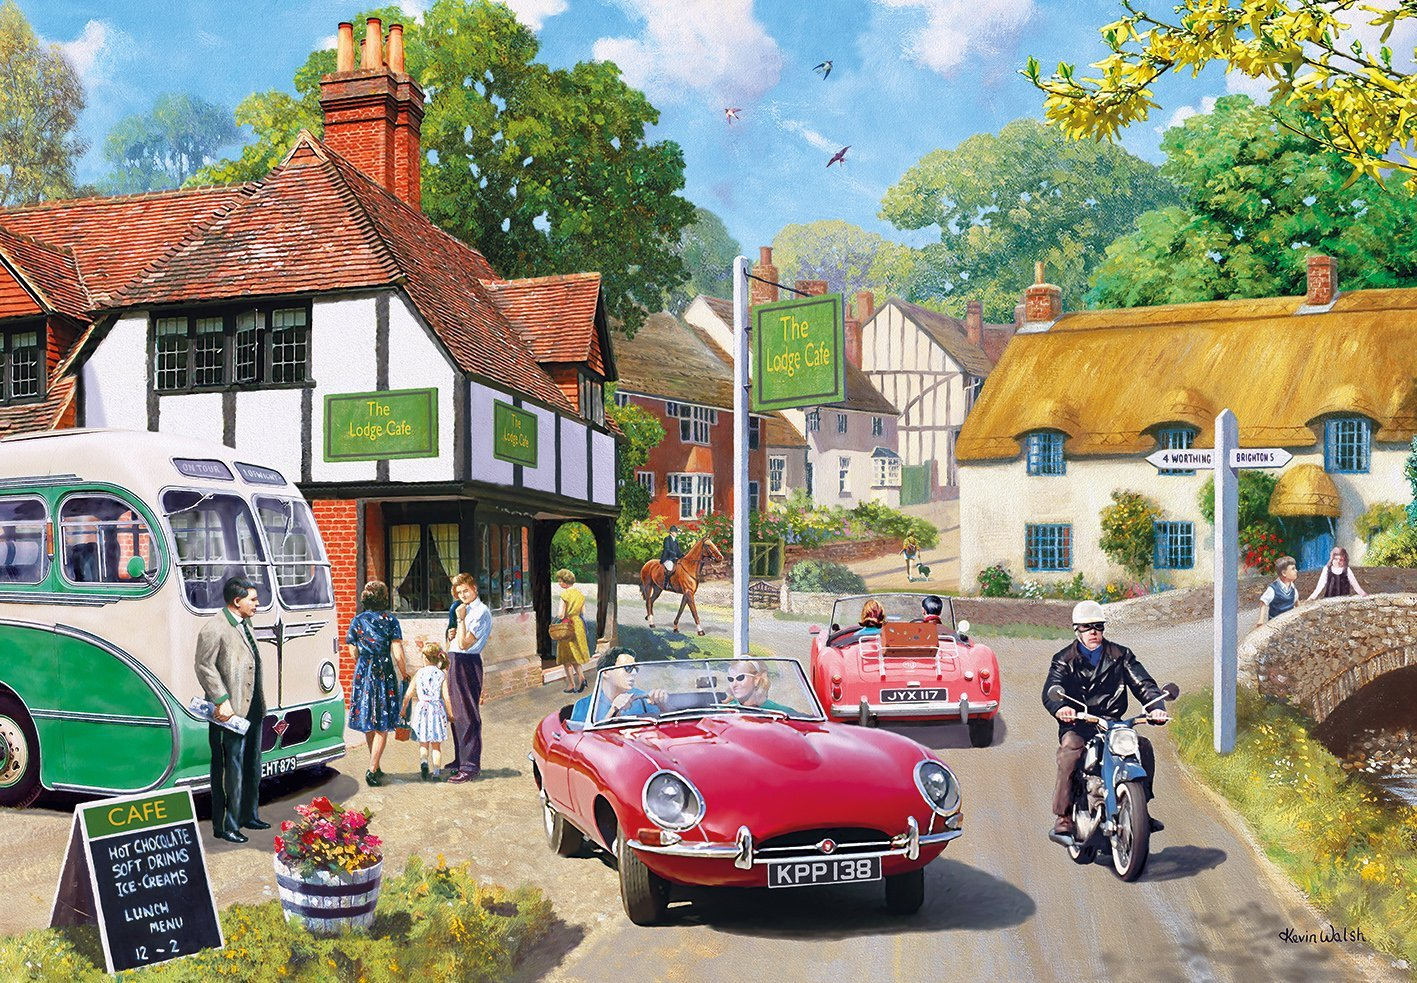 gibsons-kevin-walsh-roadside-refreshment-2000-teile-puzzle-gibsons-g8013